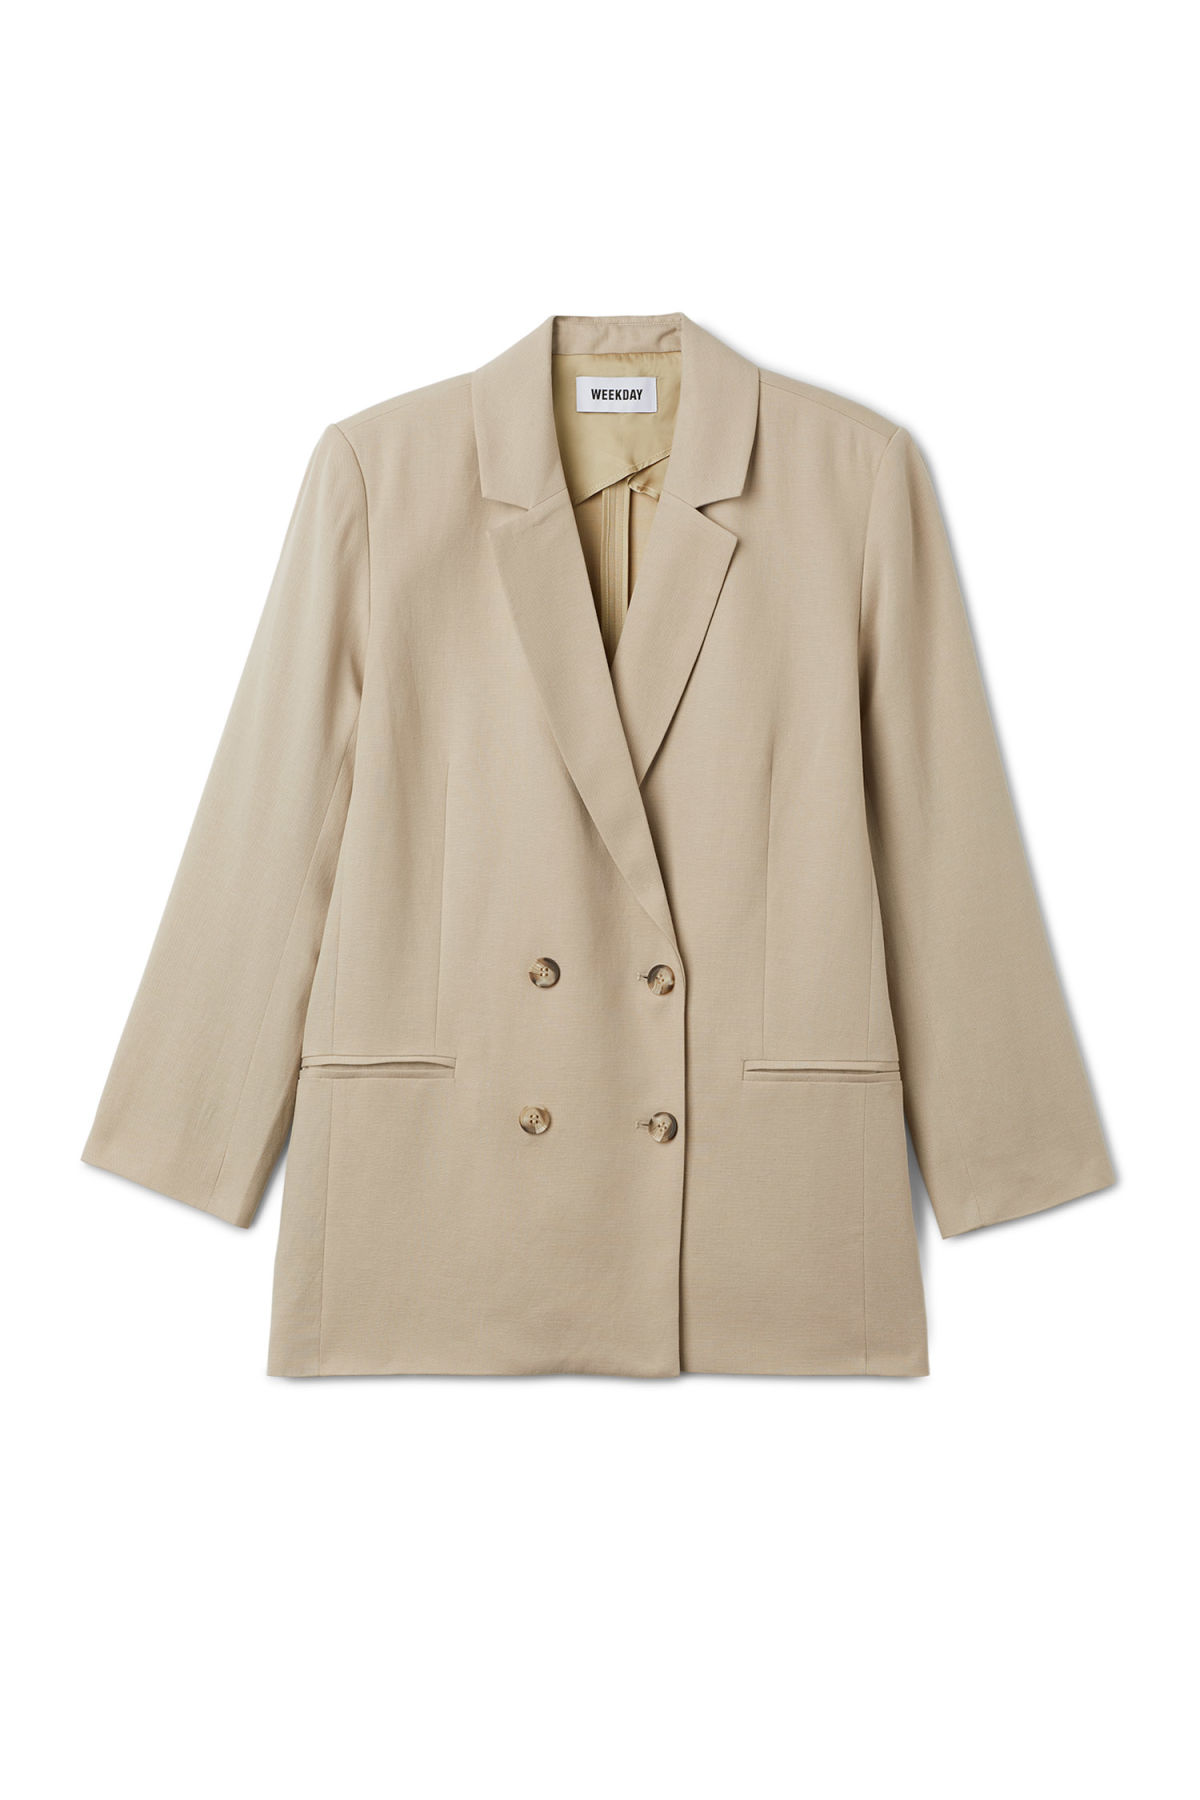 Front image of Weekday ink blazer in beige